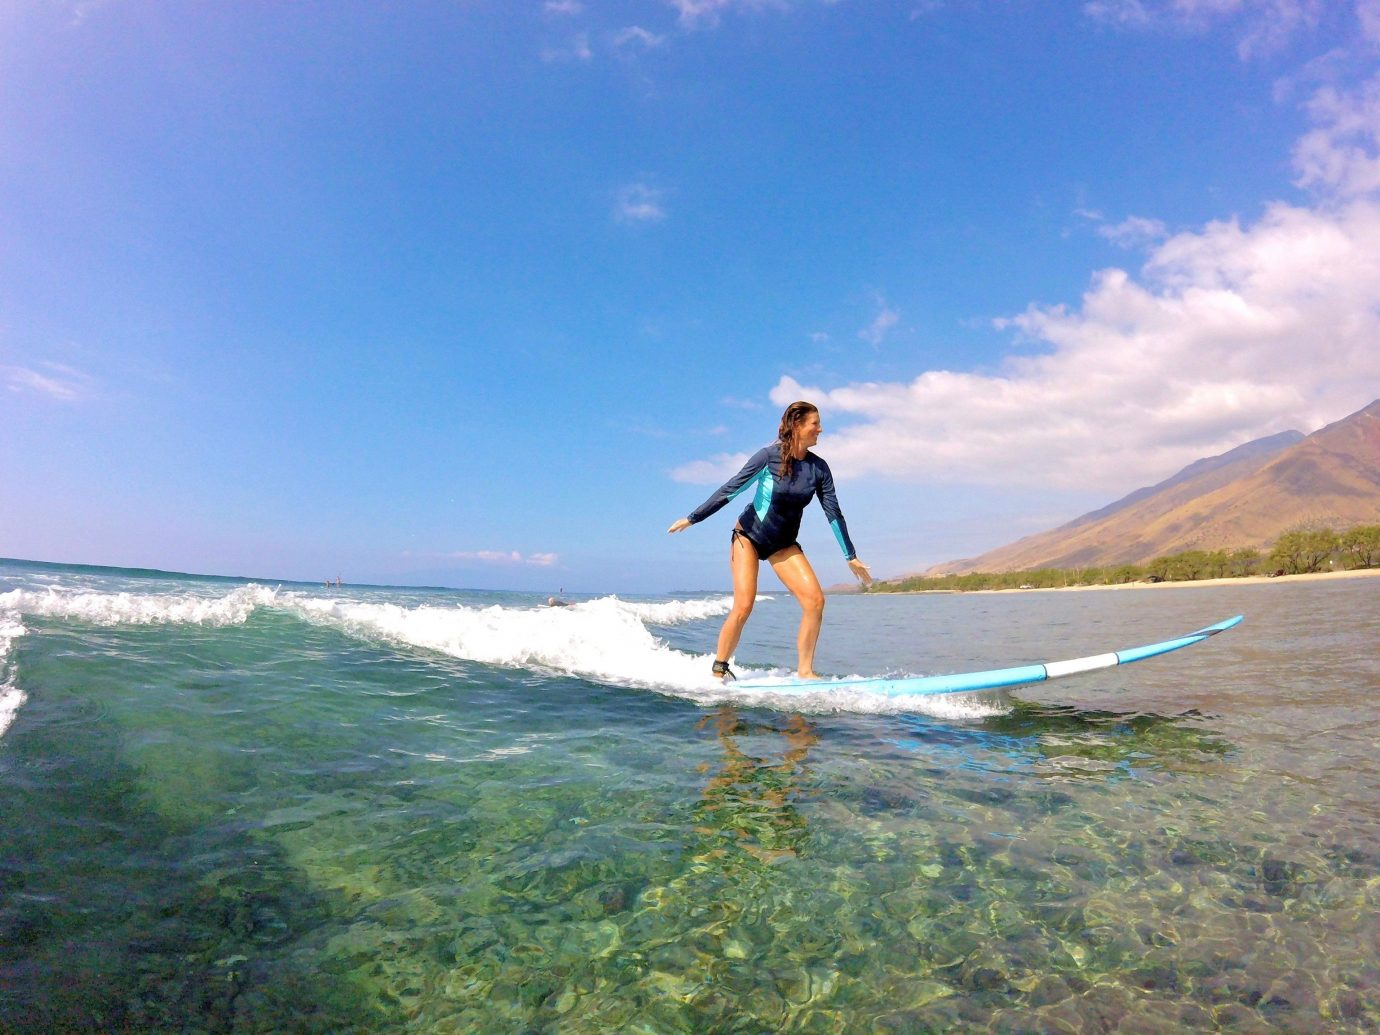 Trip Ideas outdoor surfing water sky wave man surfing equipment and supplies board surfboard water sport Ocean boardsport surface water sports person wind wave Sport vacation wakesurfing shore tourism leisure coastal and oceanic landforms Coast fun stand up paddle surfing Sea paddle landscape wind day